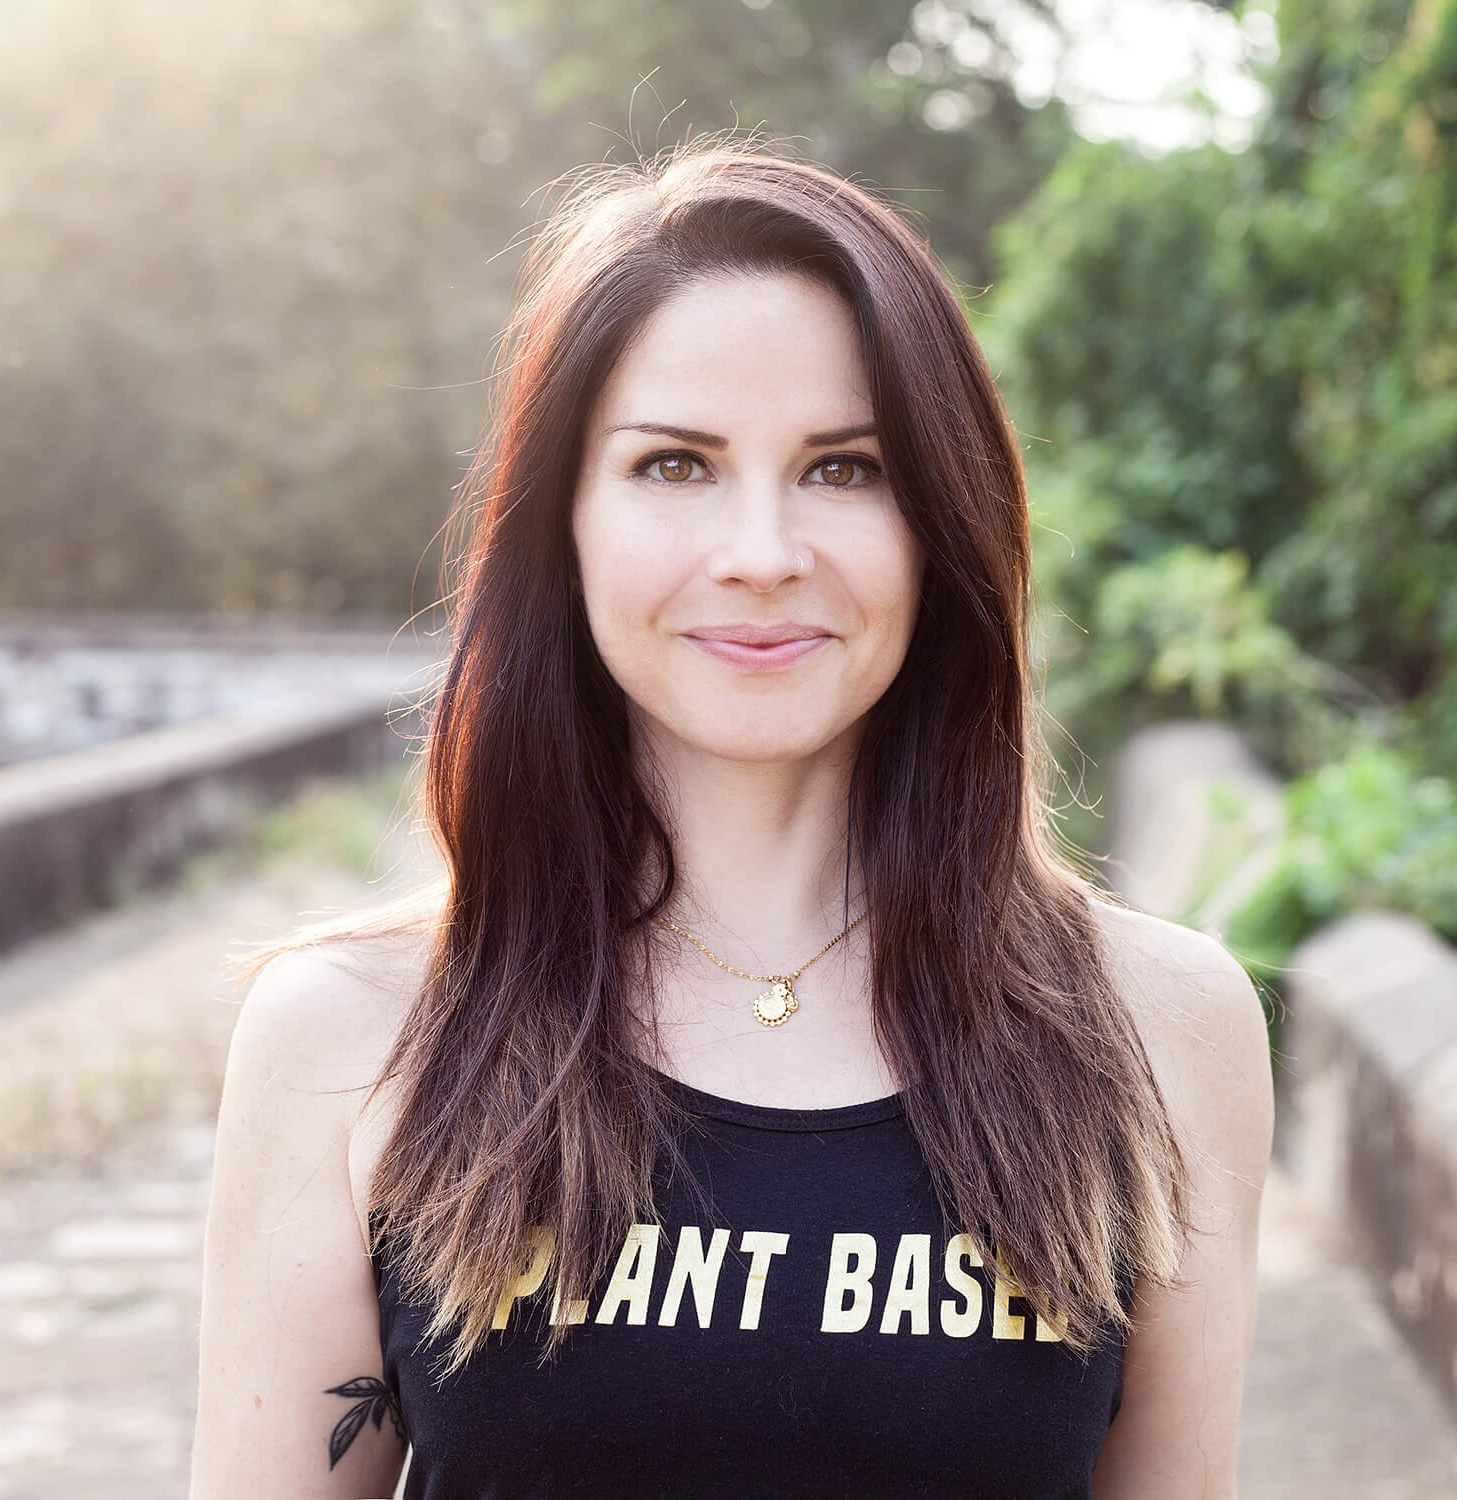 PCOS LIVING's interview with Jenna Longoria